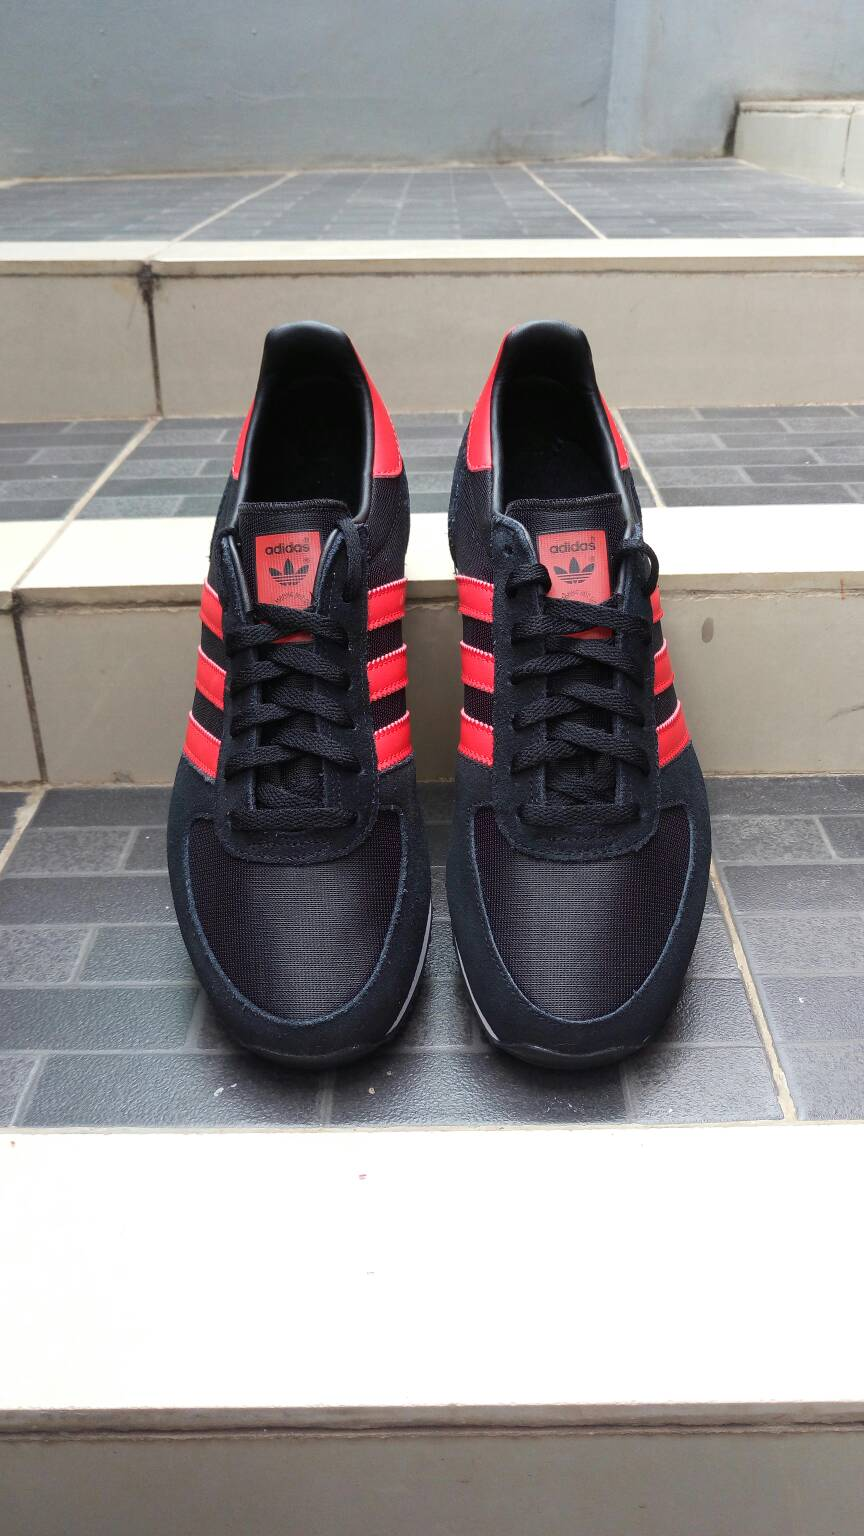 Adidas Zx Racer Black Red